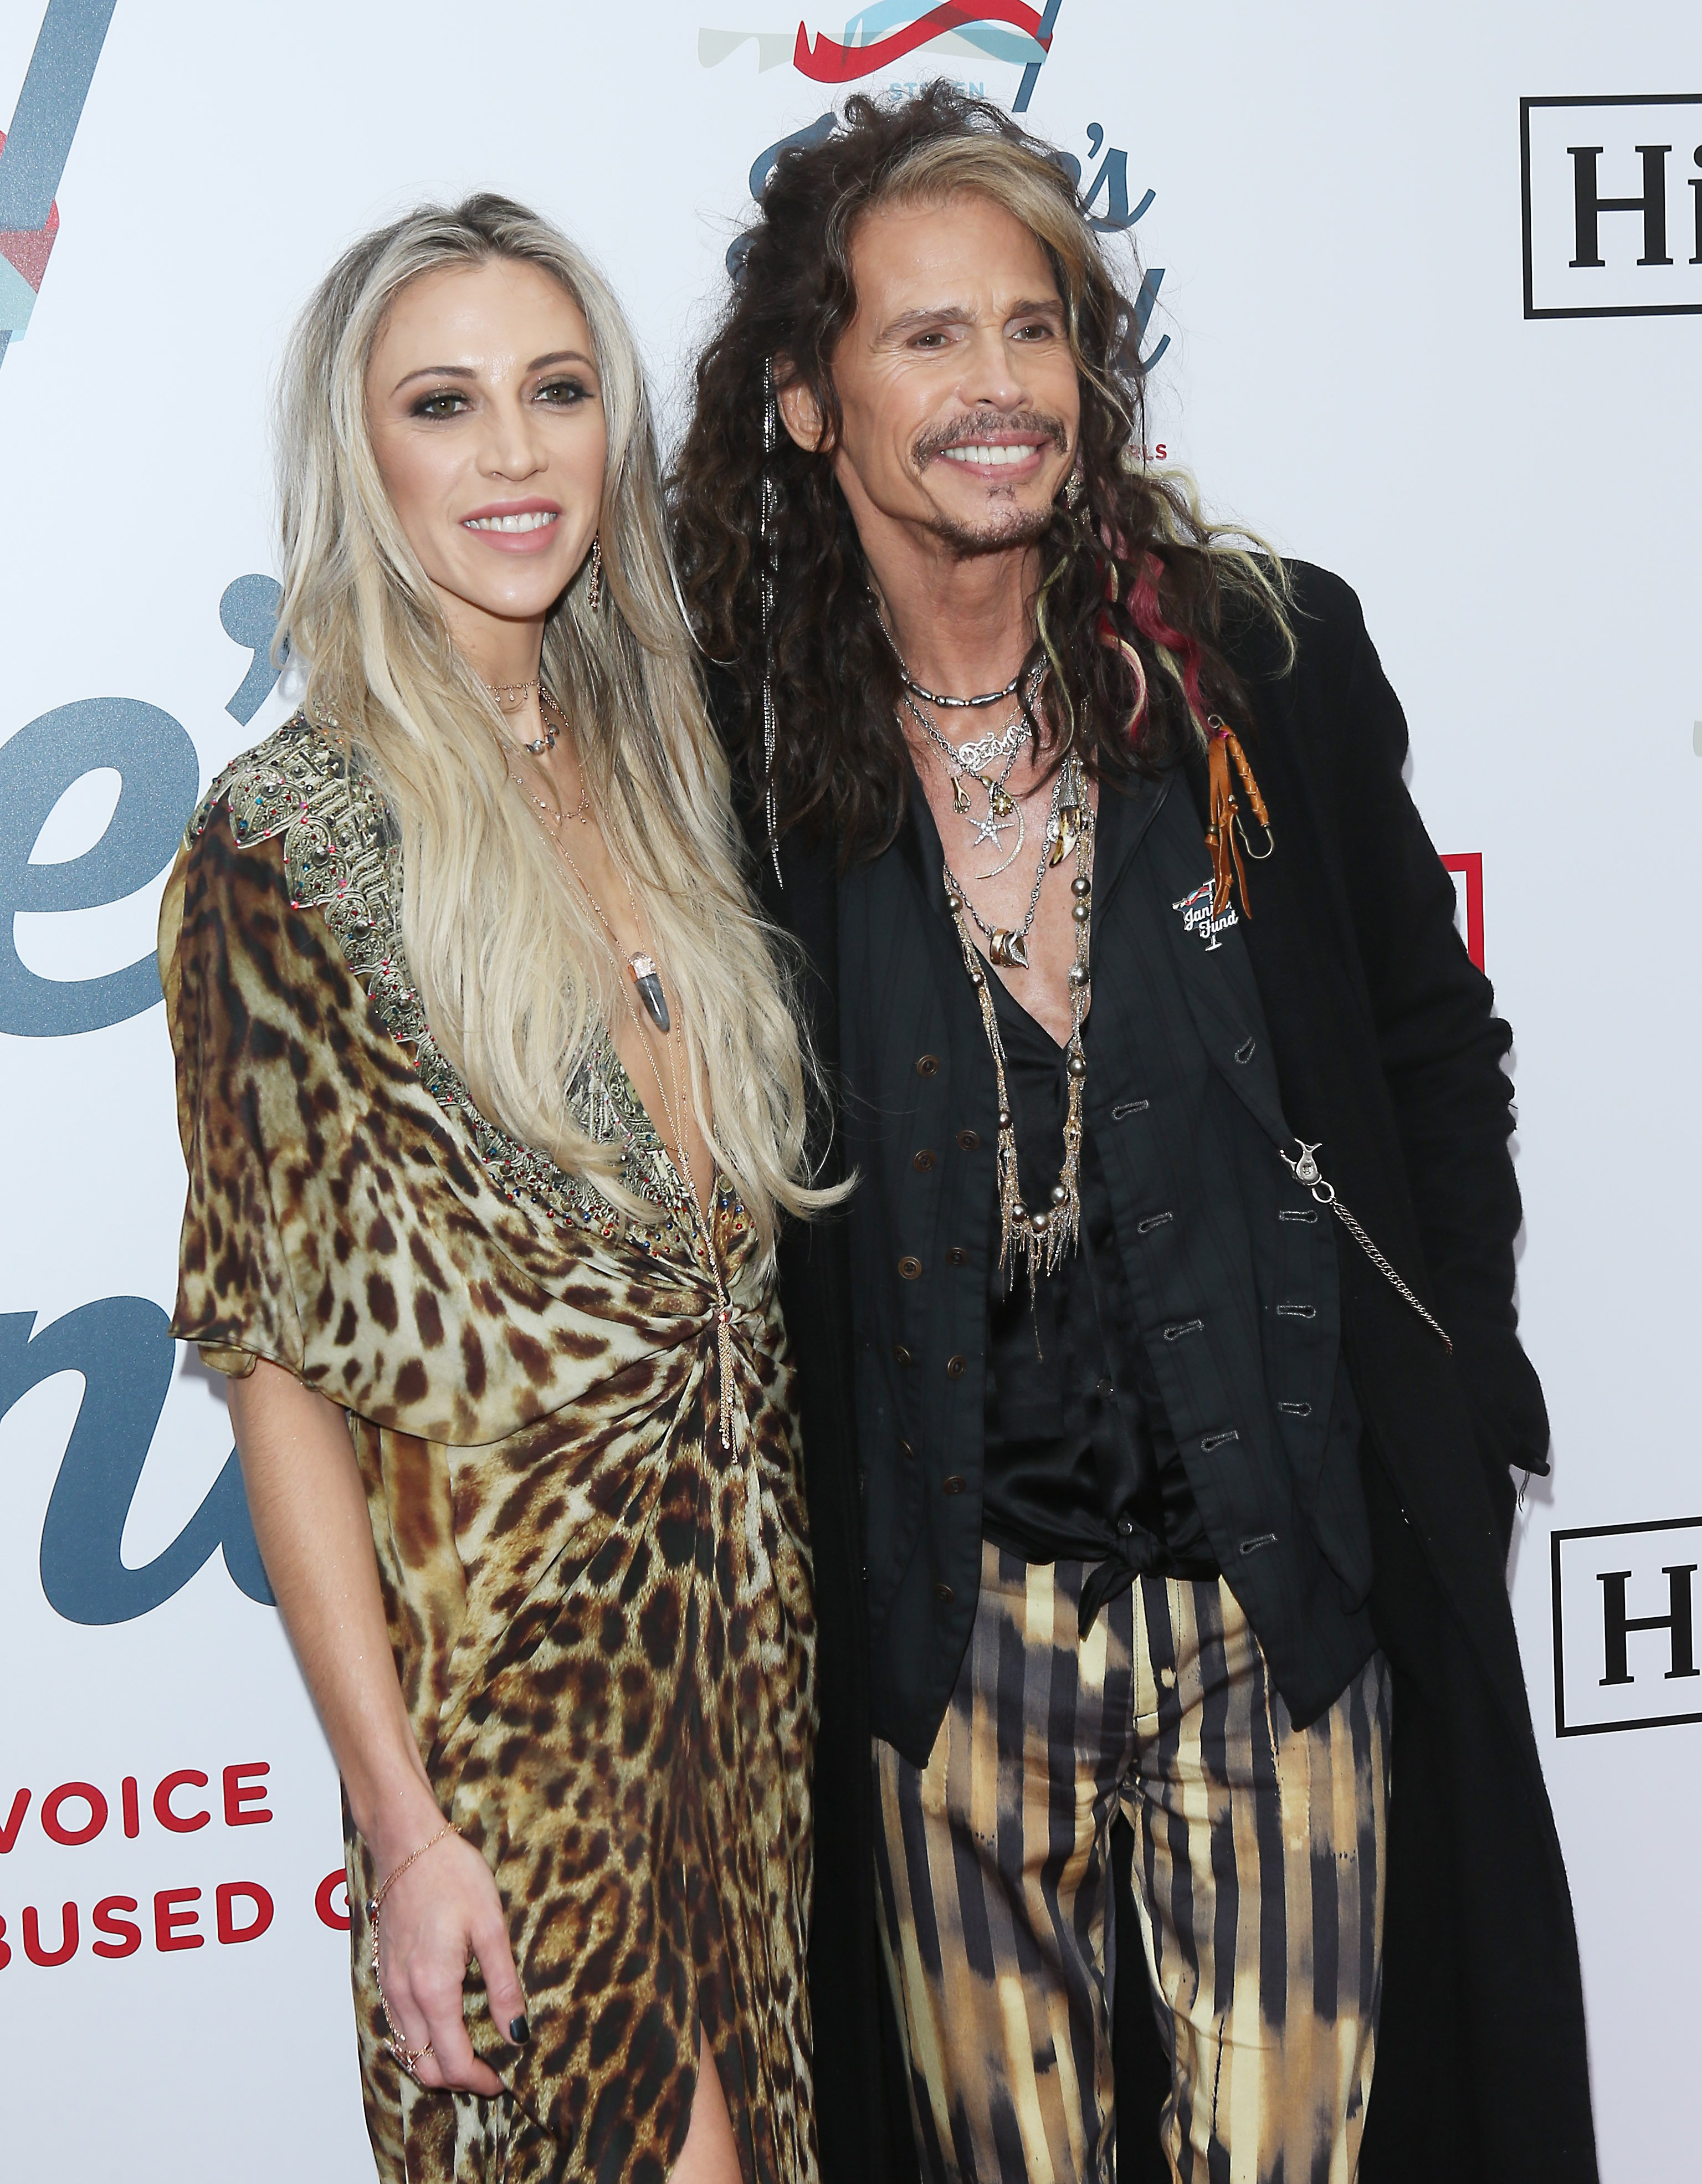 Steven Tyler and Aimee Preston attend Steven Tyler'sGRAMMY Awards viewing party benefiting Janie's Fund held at Raleigh Studios on February 10, 2019, in Los Angeles, California. | Source: Getty Images.